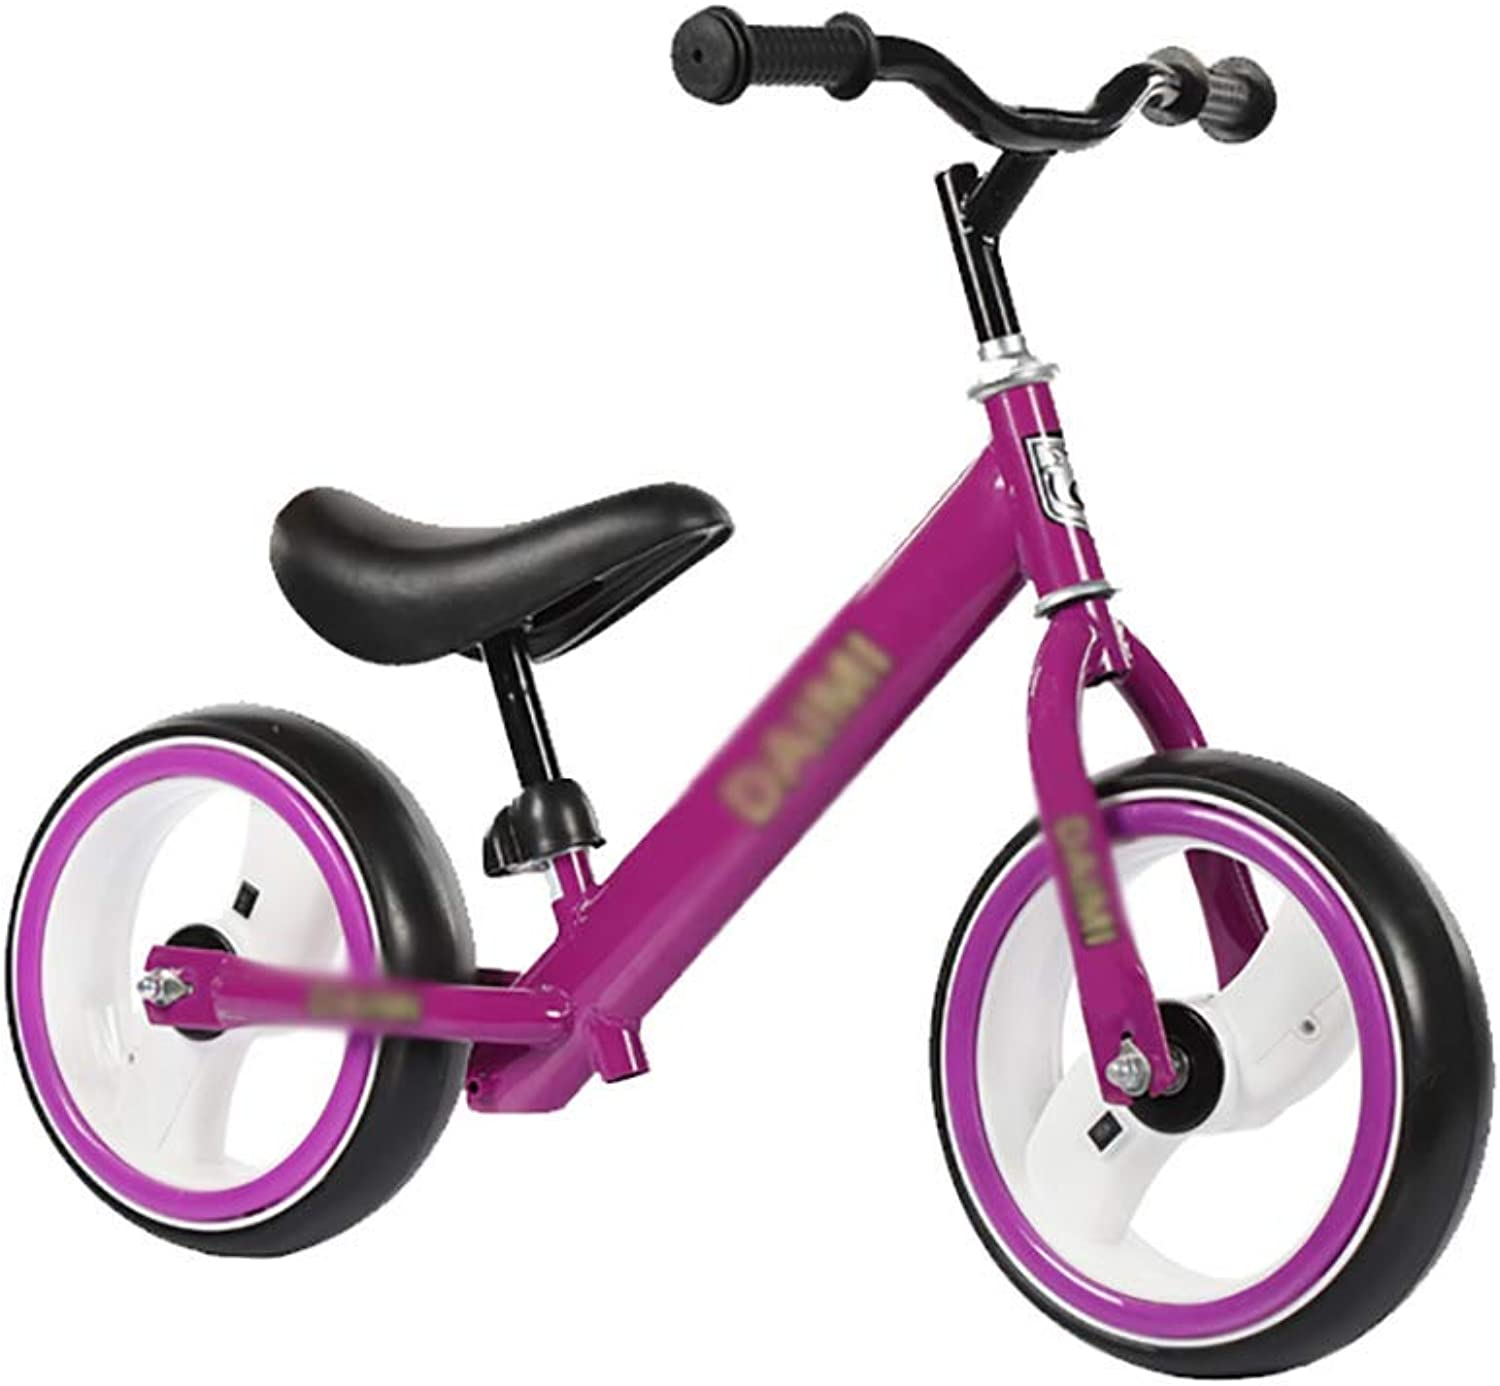 12 Inch Balance Bike No Pedal Bicycle with Adjustable Handlebar and Seat for Kids from 26, Illuminated Wheel